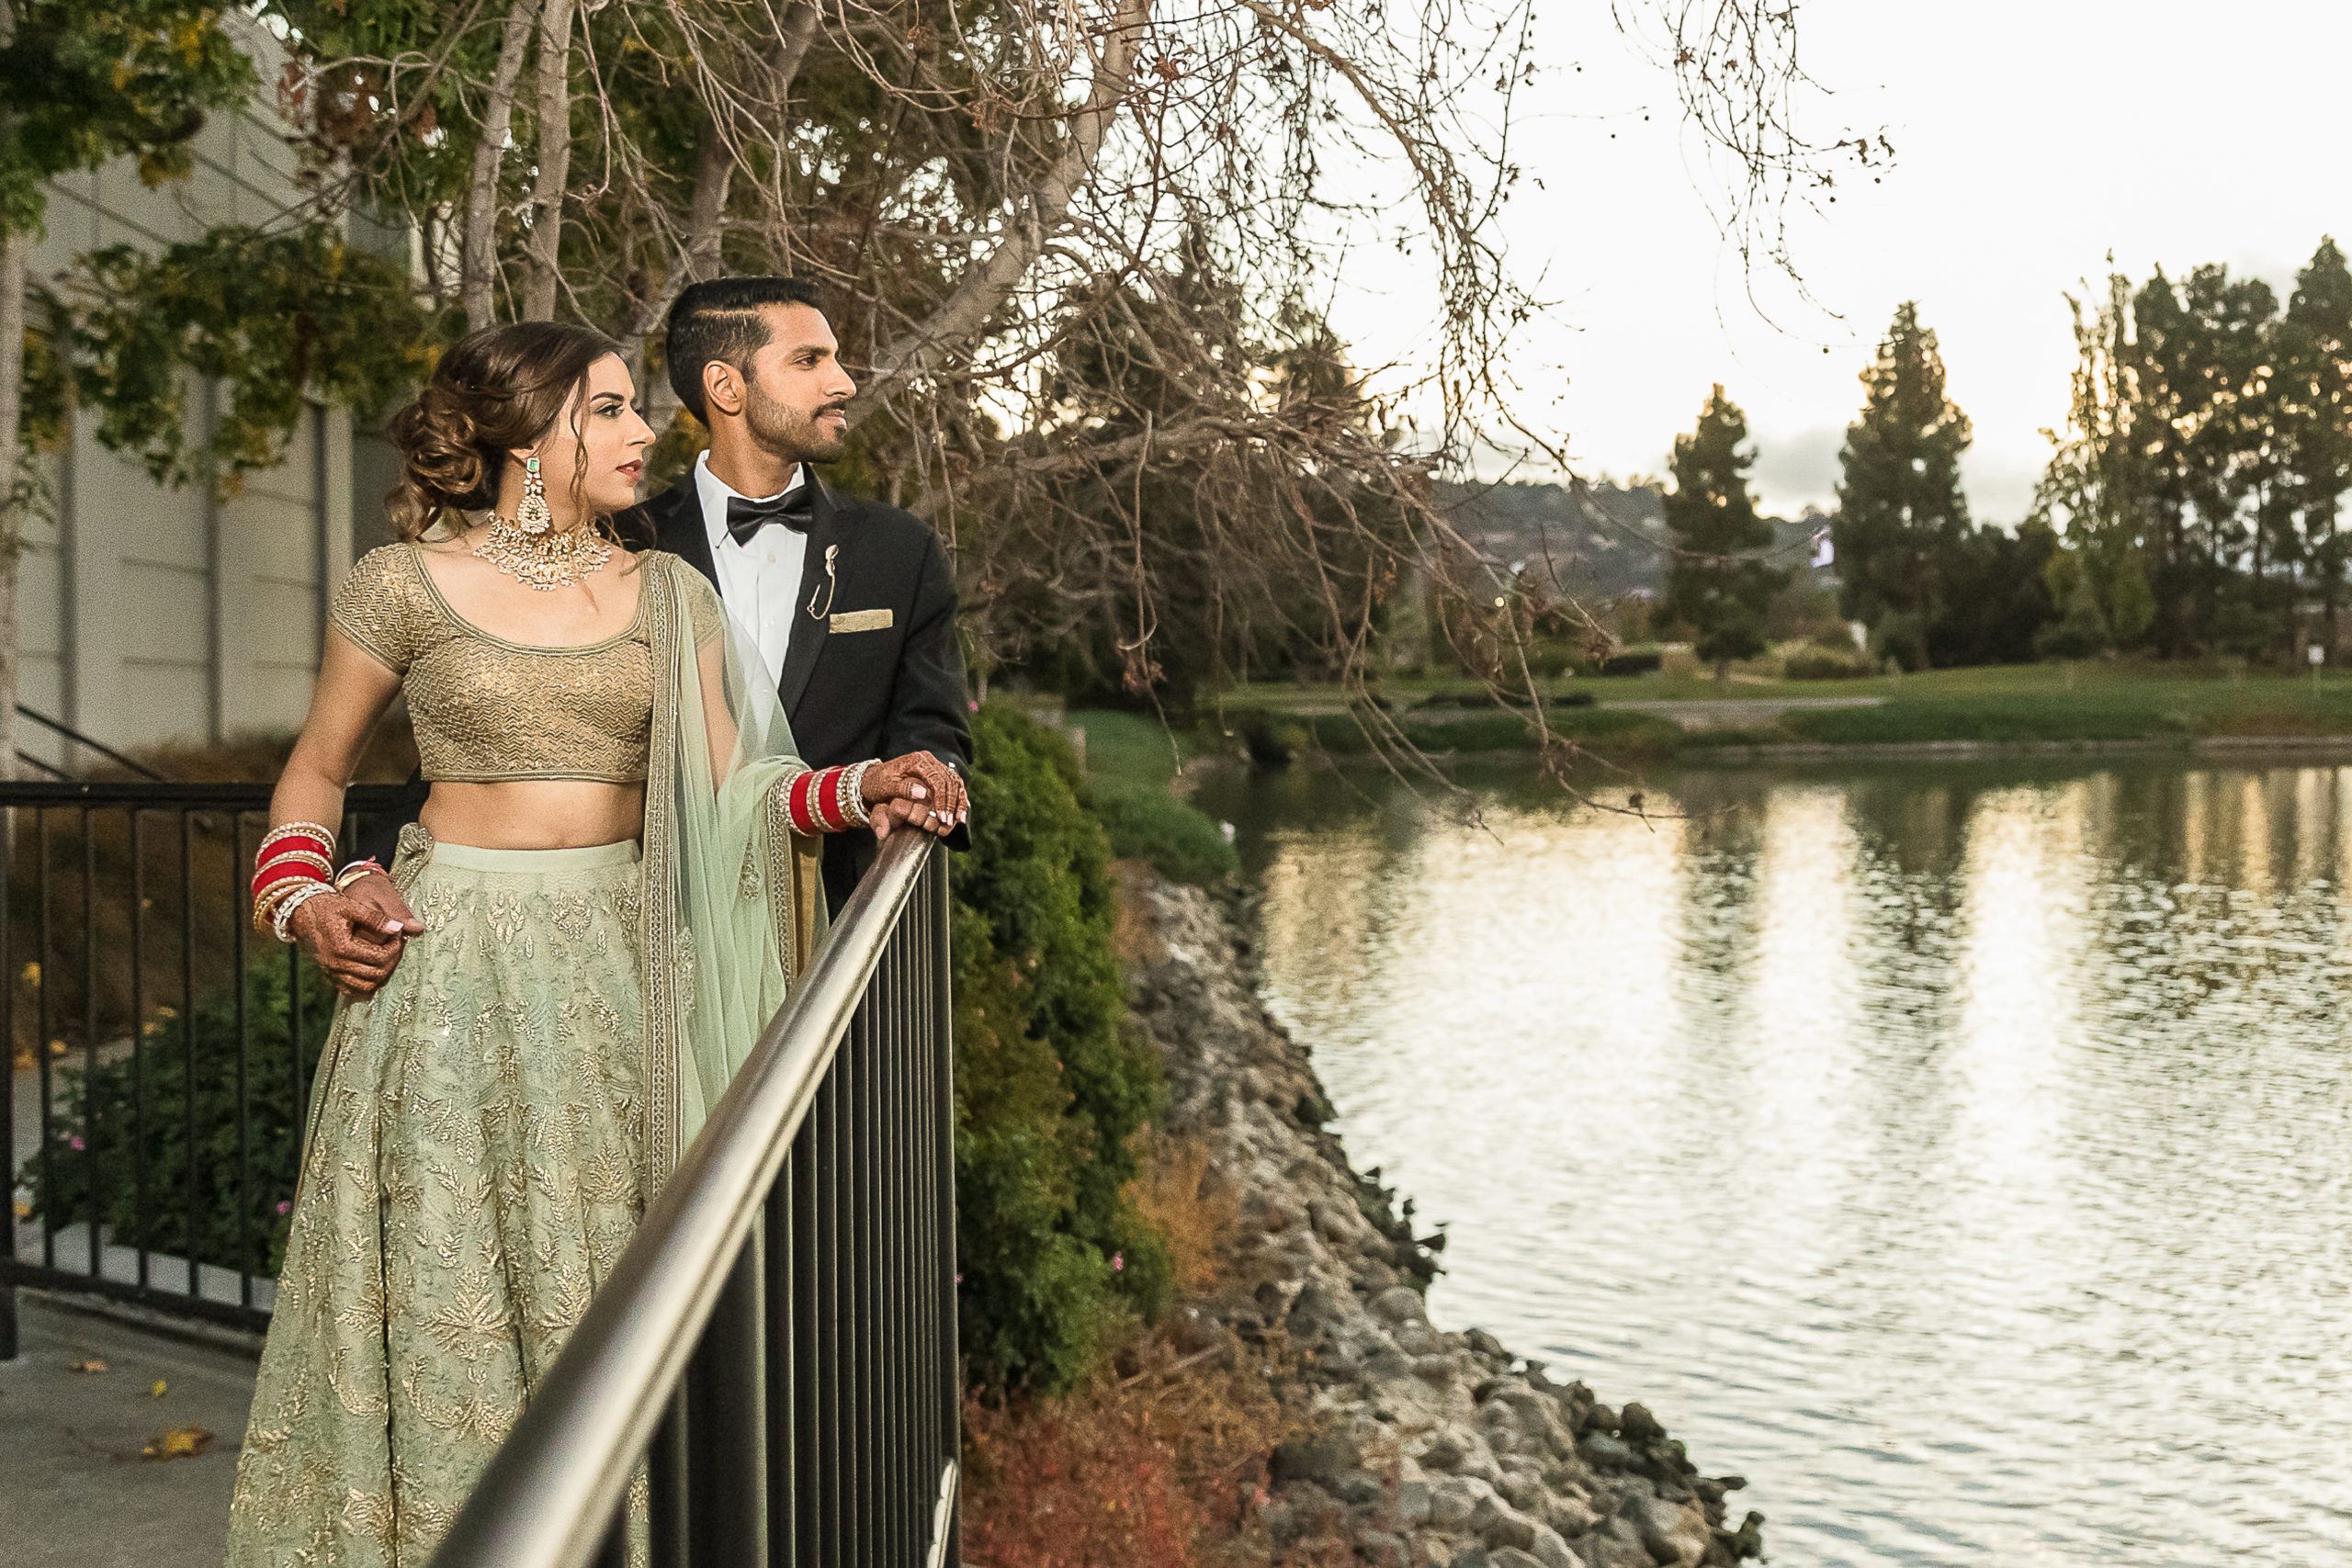 Pullman San Francisco Bay   Photography and Cinematography   Indian Wedding Photographer   Motion 8 Films   Indian Wedding Photography   Cinematography